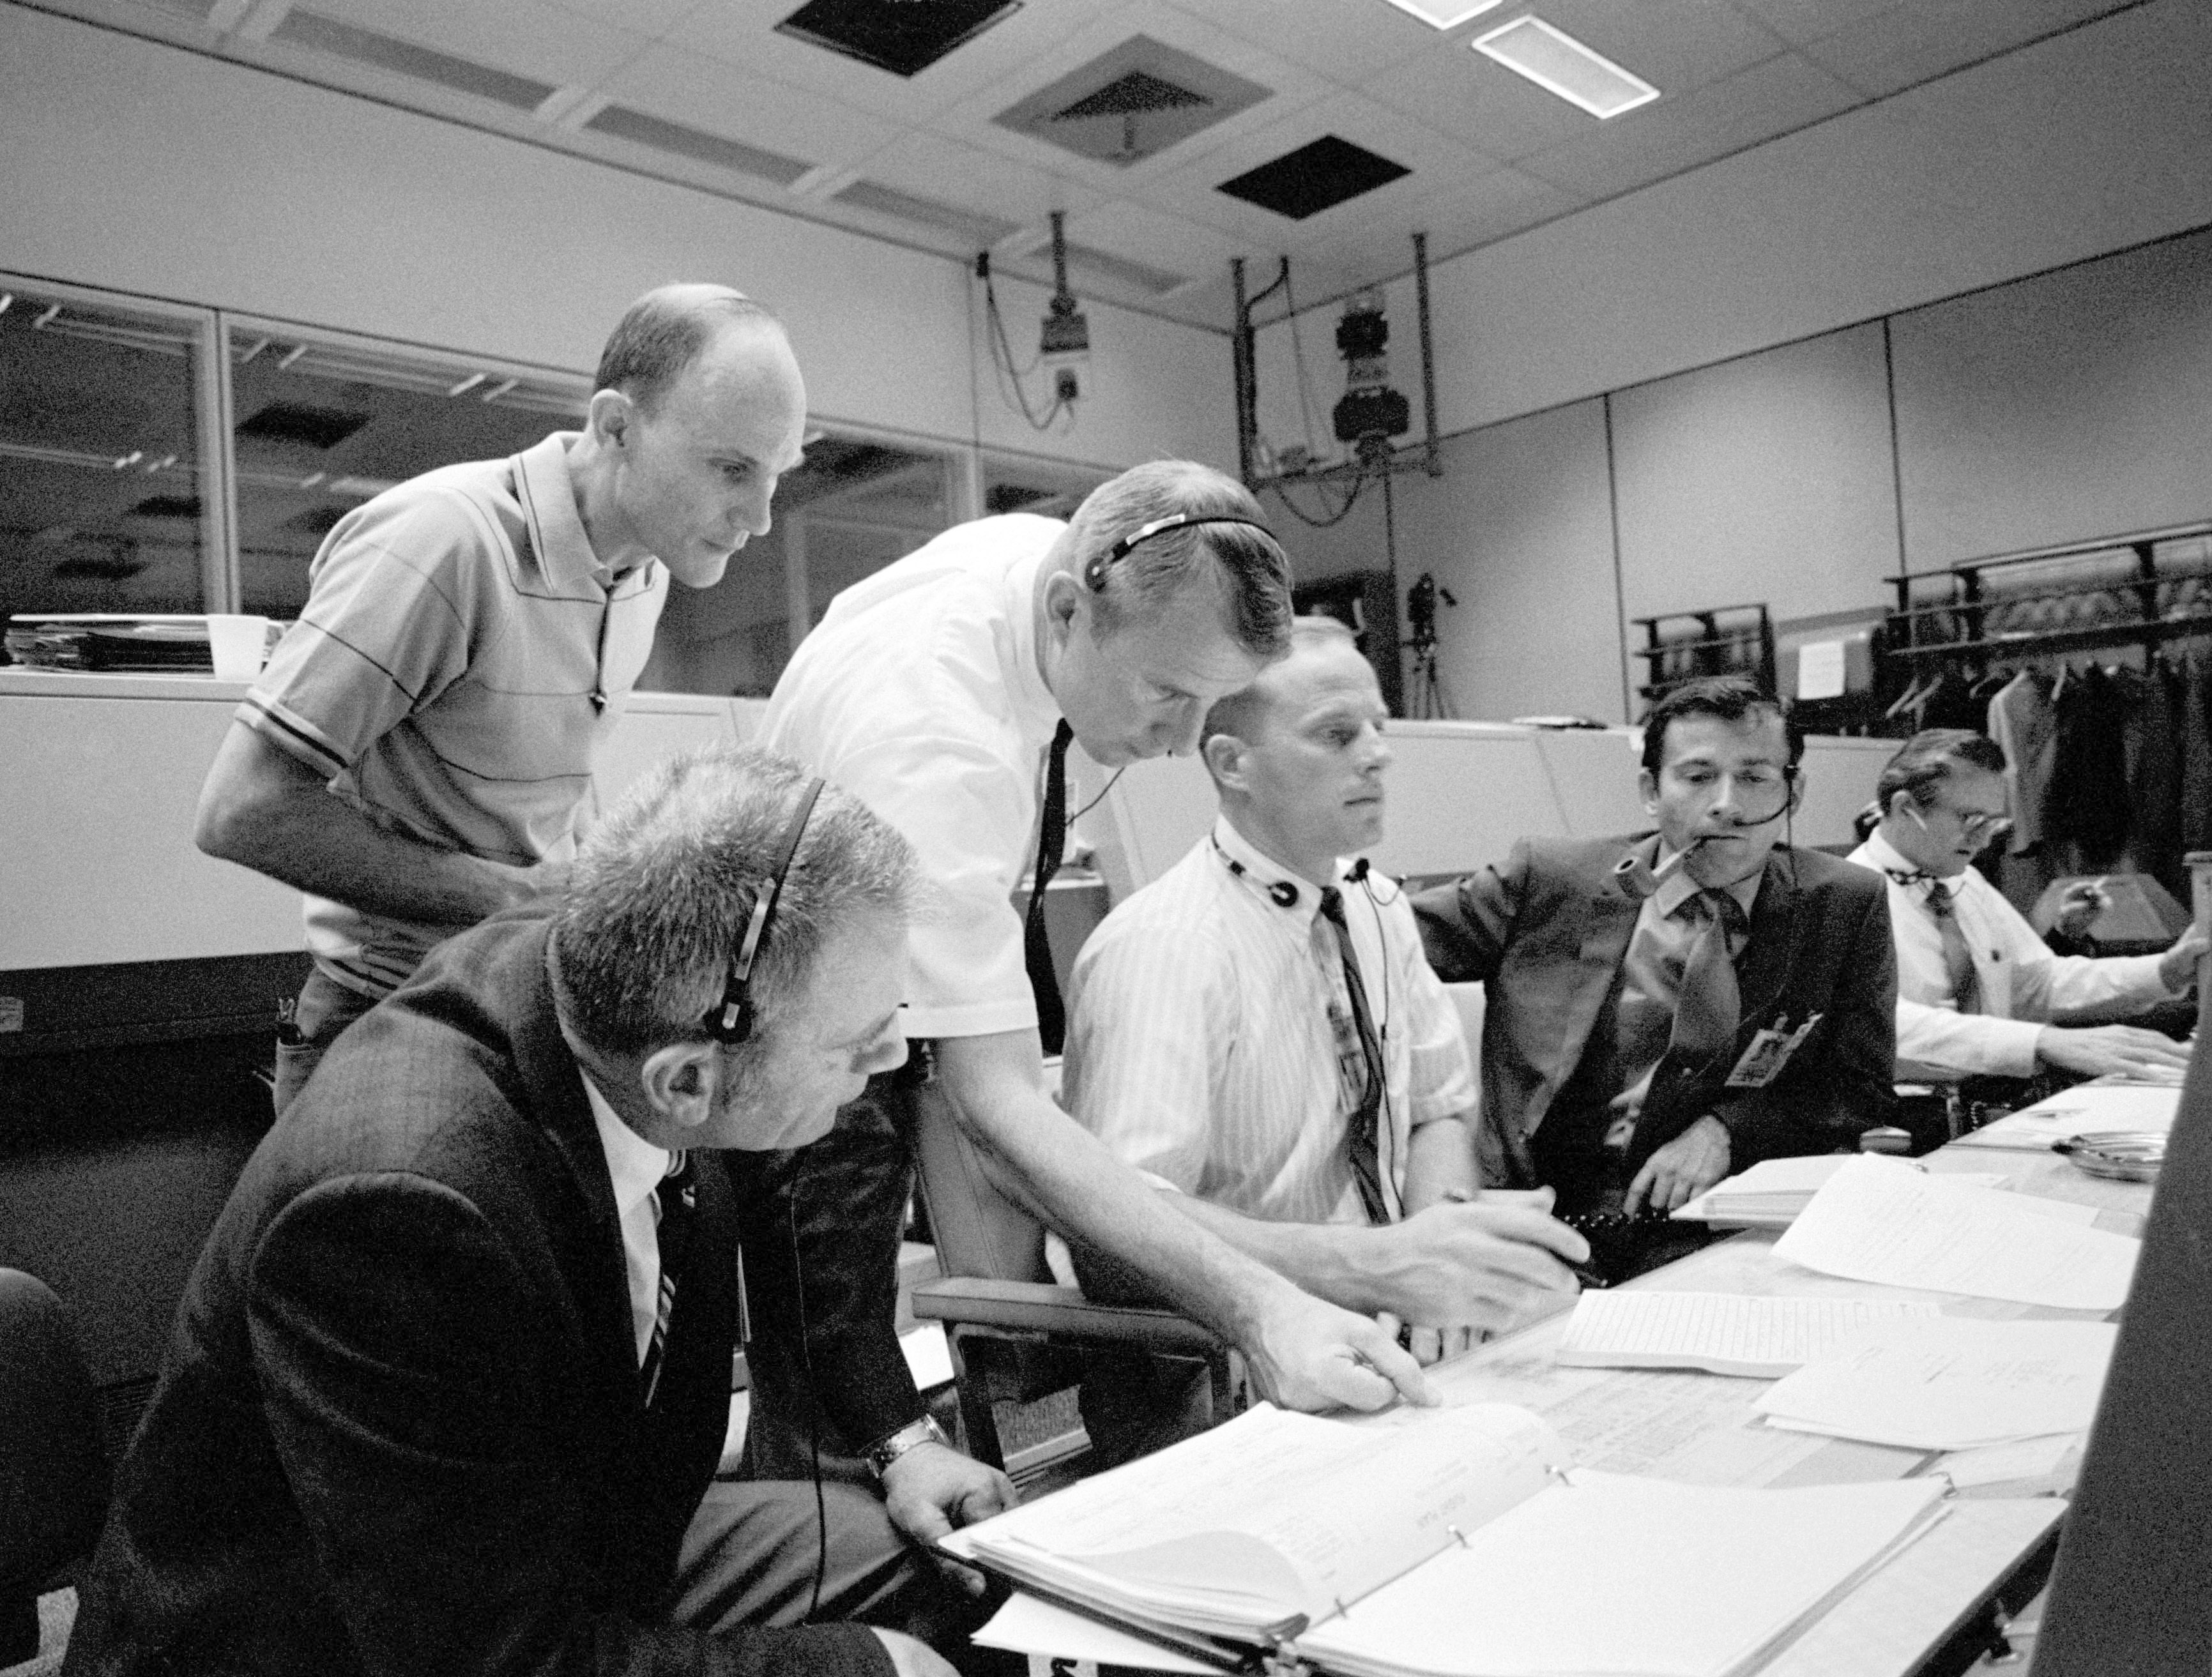 fichierview of mission control center during the apollo